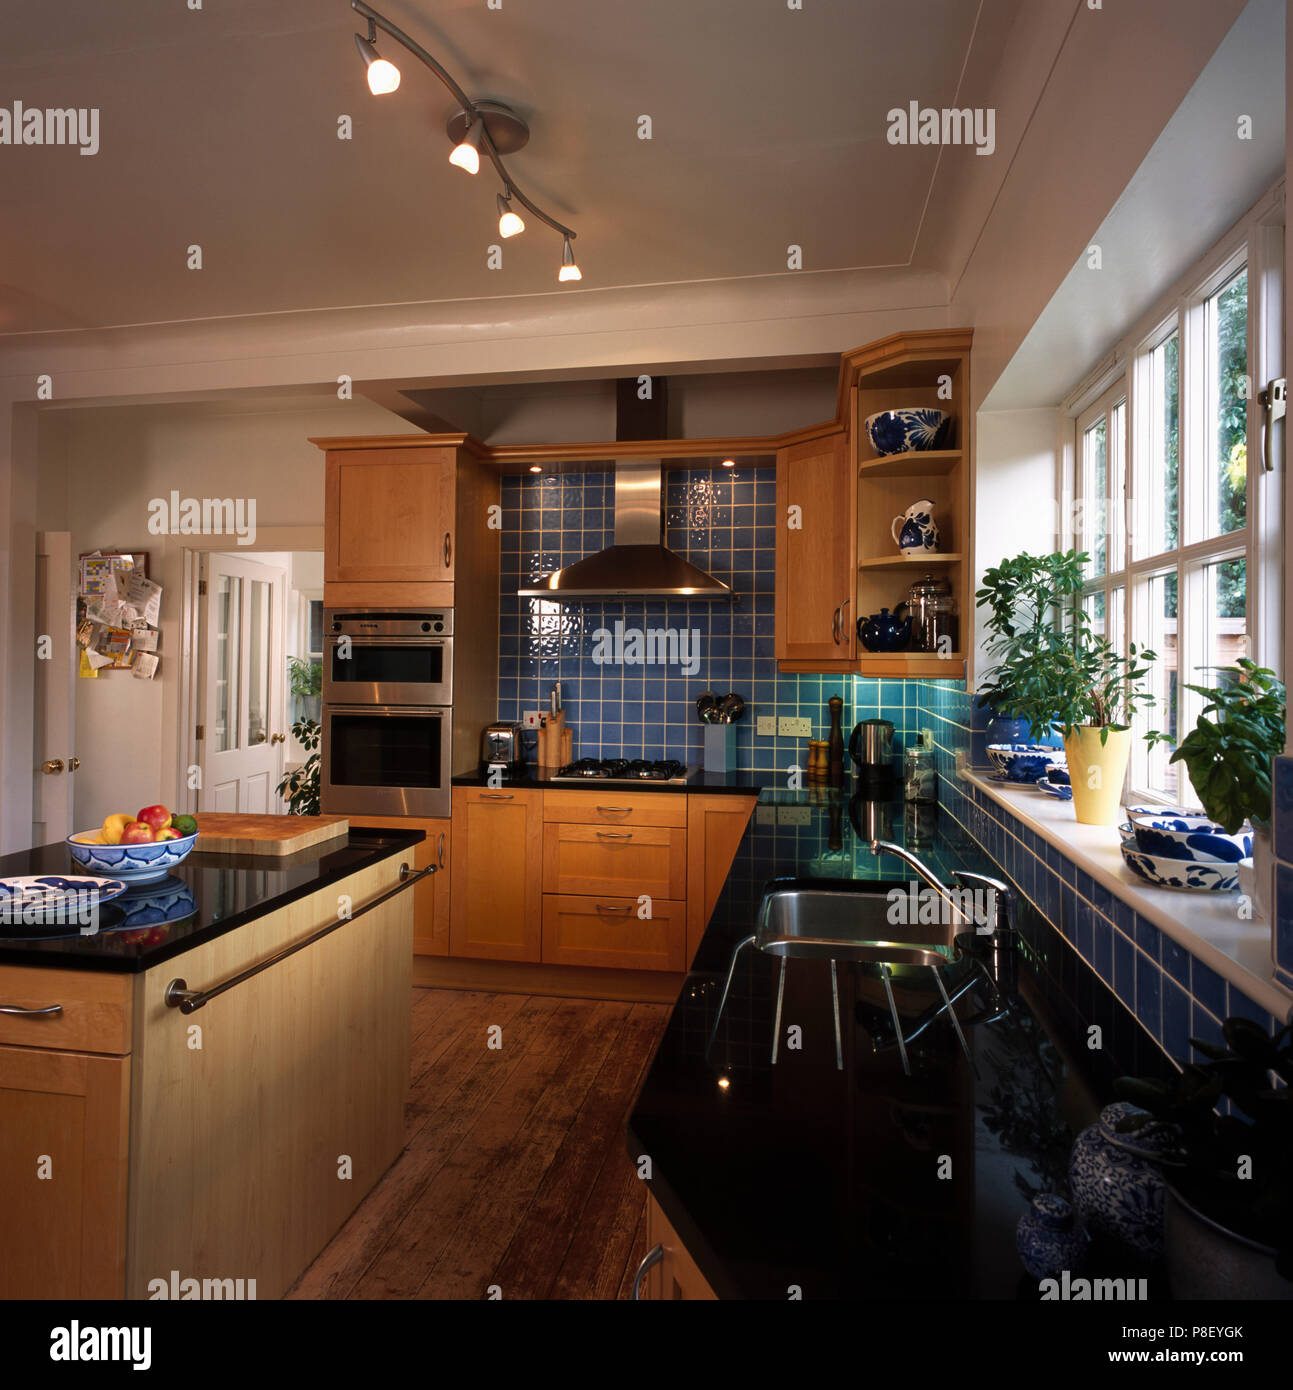 Island Unit And Ceiling Track Lighting In Modern Kitchen With Granite Worktops Stock Photo Alamy